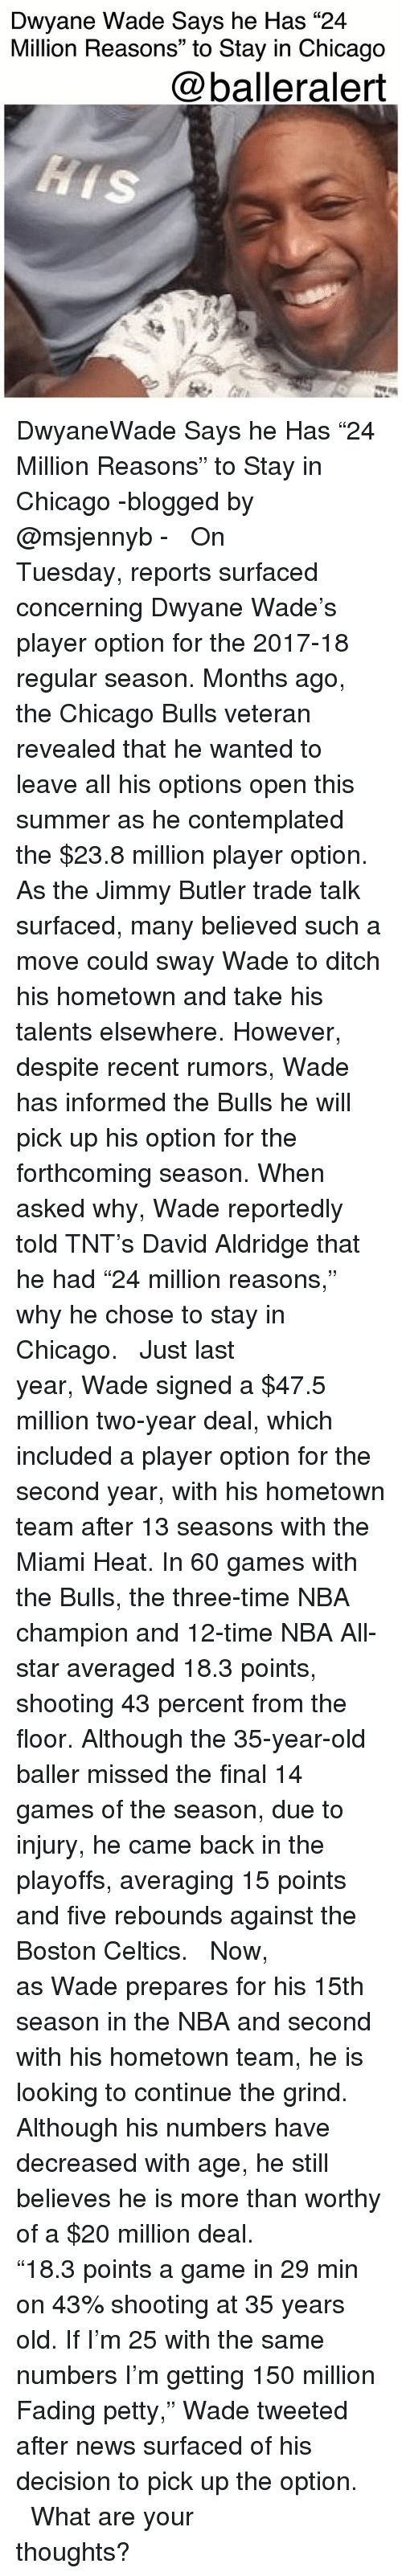 "Boston Celtics: Dwyane Wade Says he Has ""24  Million Reasons"" to Stay in Chicago  @balleralert DwyaneWade Says he Has ""24 Million Reasons"" to Stay in Chicago -blogged by @msjennyb - ⠀⠀⠀⠀⠀⠀⠀ ⠀⠀⠀⠀⠀⠀⠀ On Tuesday, reports surfaced concerning Dwyane Wade's player option for the 2017-18 regular season. Months ago, the Chicago Bulls veteran revealed that he wanted to leave all his options open this summer as he contemplated the $23.8 million player option. As the Jimmy Butler trade talk surfaced, many believed such a move could sway Wade to ditch his hometown and take his talents elsewhere. However, despite recent rumors, Wade has informed the Bulls he will pick up his option for the forthcoming season. When asked why, Wade reportedly told TNT's David Aldridge that he had ""24 million reasons,"" why he chose to stay in Chicago. ⠀⠀⠀⠀⠀⠀⠀ ⠀⠀⠀⠀⠀⠀⠀ Just last year, Wade signed a $47.5 million two-year deal, which included a player option for the second year, with his hometown team after 13 seasons with the Miami Heat. In 60 games with the Bulls, the three-time NBA champion and 12-time NBA All-star averaged 18.3 points, shooting 43 percent from the floor. Although the 35-year-old baller missed the final 14 games of the season, due to injury, he came back in the playoffs, averaging 15 points and five rebounds against the Boston Celtics. ⠀⠀⠀⠀⠀⠀⠀ ⠀⠀⠀⠀⠀⠀⠀ Now, as Wade prepares for his 15th season in the NBA and second with his hometown team, he is looking to continue the grind. Although his numbers have decreased with age, he still believes he is more than worthy of a $20 million deal. ⠀⠀⠀⠀⠀⠀⠀ ⠀⠀⠀⠀⠀⠀⠀ ""18.3 points a game in 29 min on 43% shooting at 35 years old. If I'm 25 with the same numbers I'm getting 150 million Fading petty,"" Wade tweeted after news surfaced of his decision to pick up the option. ⠀⠀⠀⠀⠀⠀⠀ ⠀⠀⠀⠀⠀⠀⠀ What are your thoughts?"